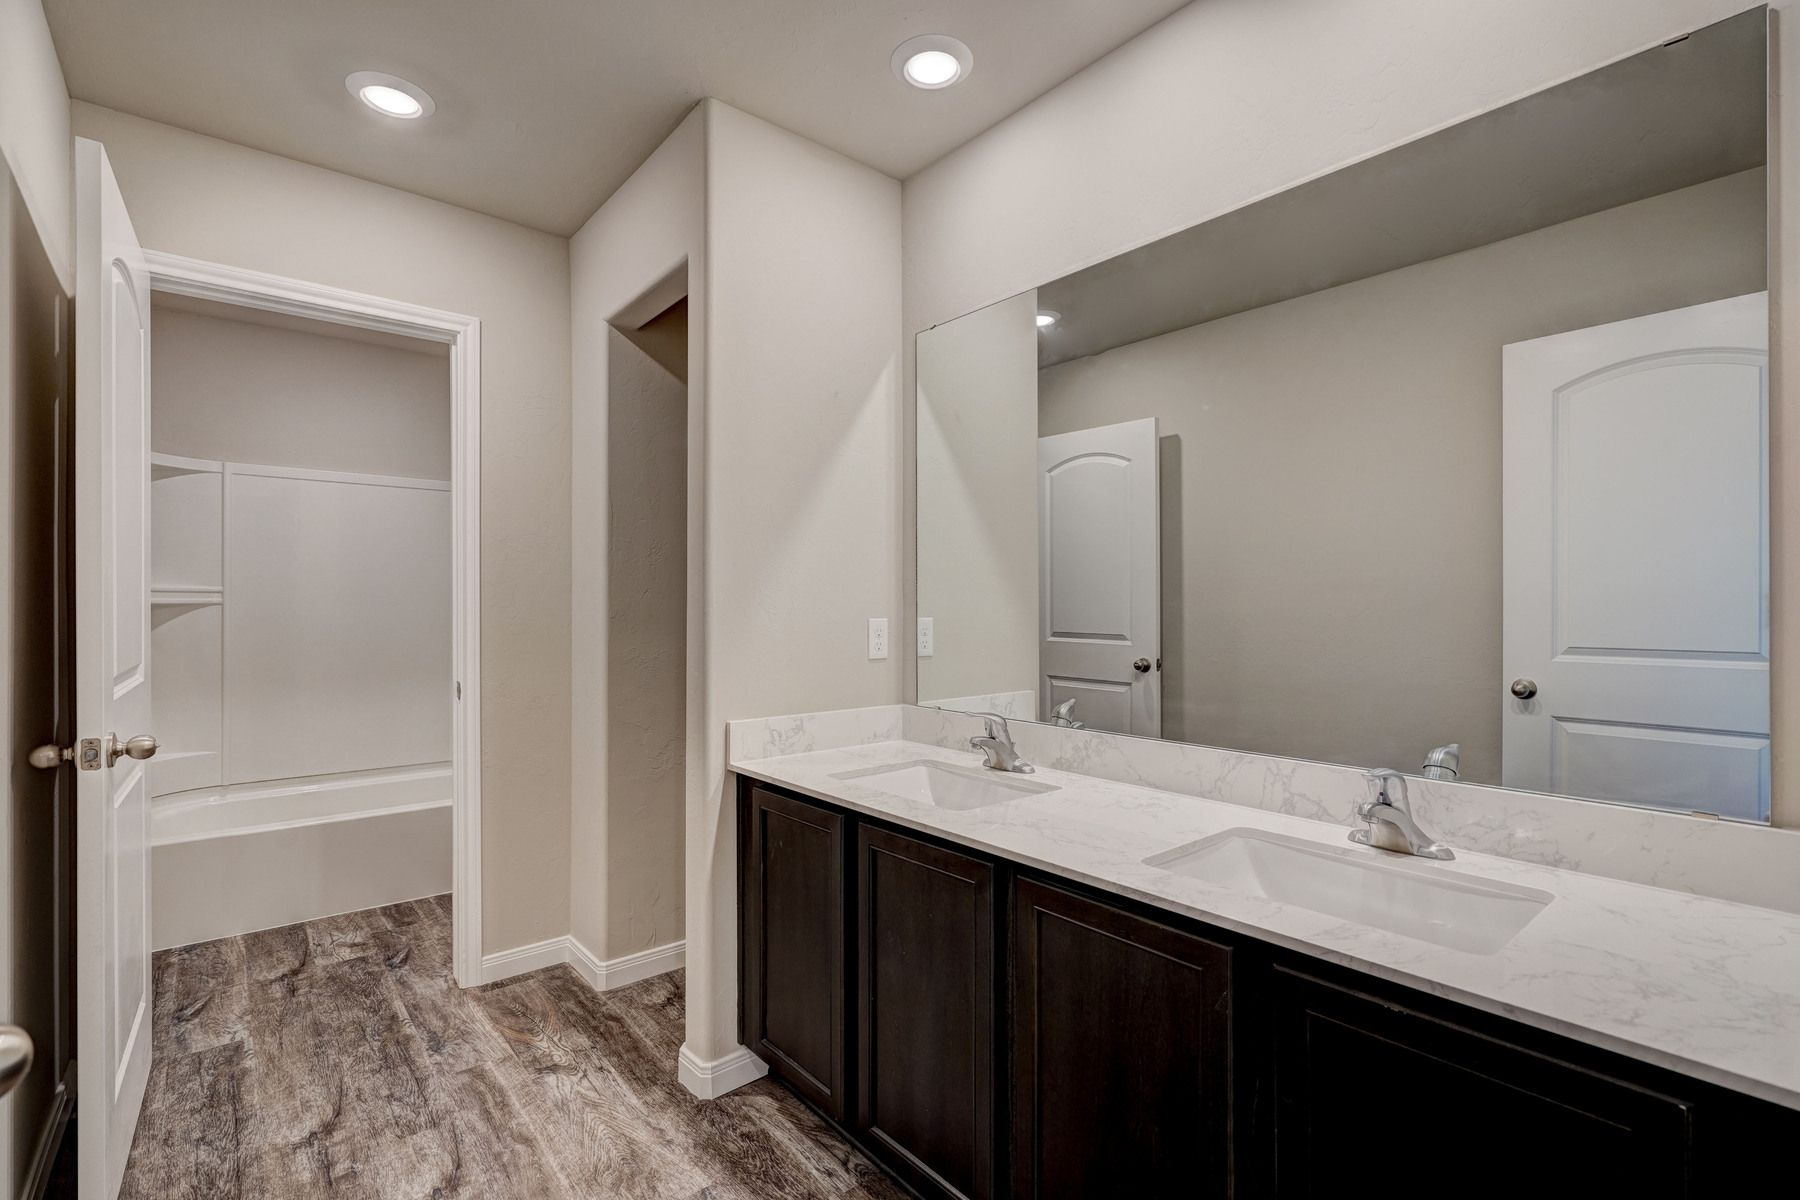 Bathroom featured in the Driftwood By LGI Homes in Oklahoma City, OK